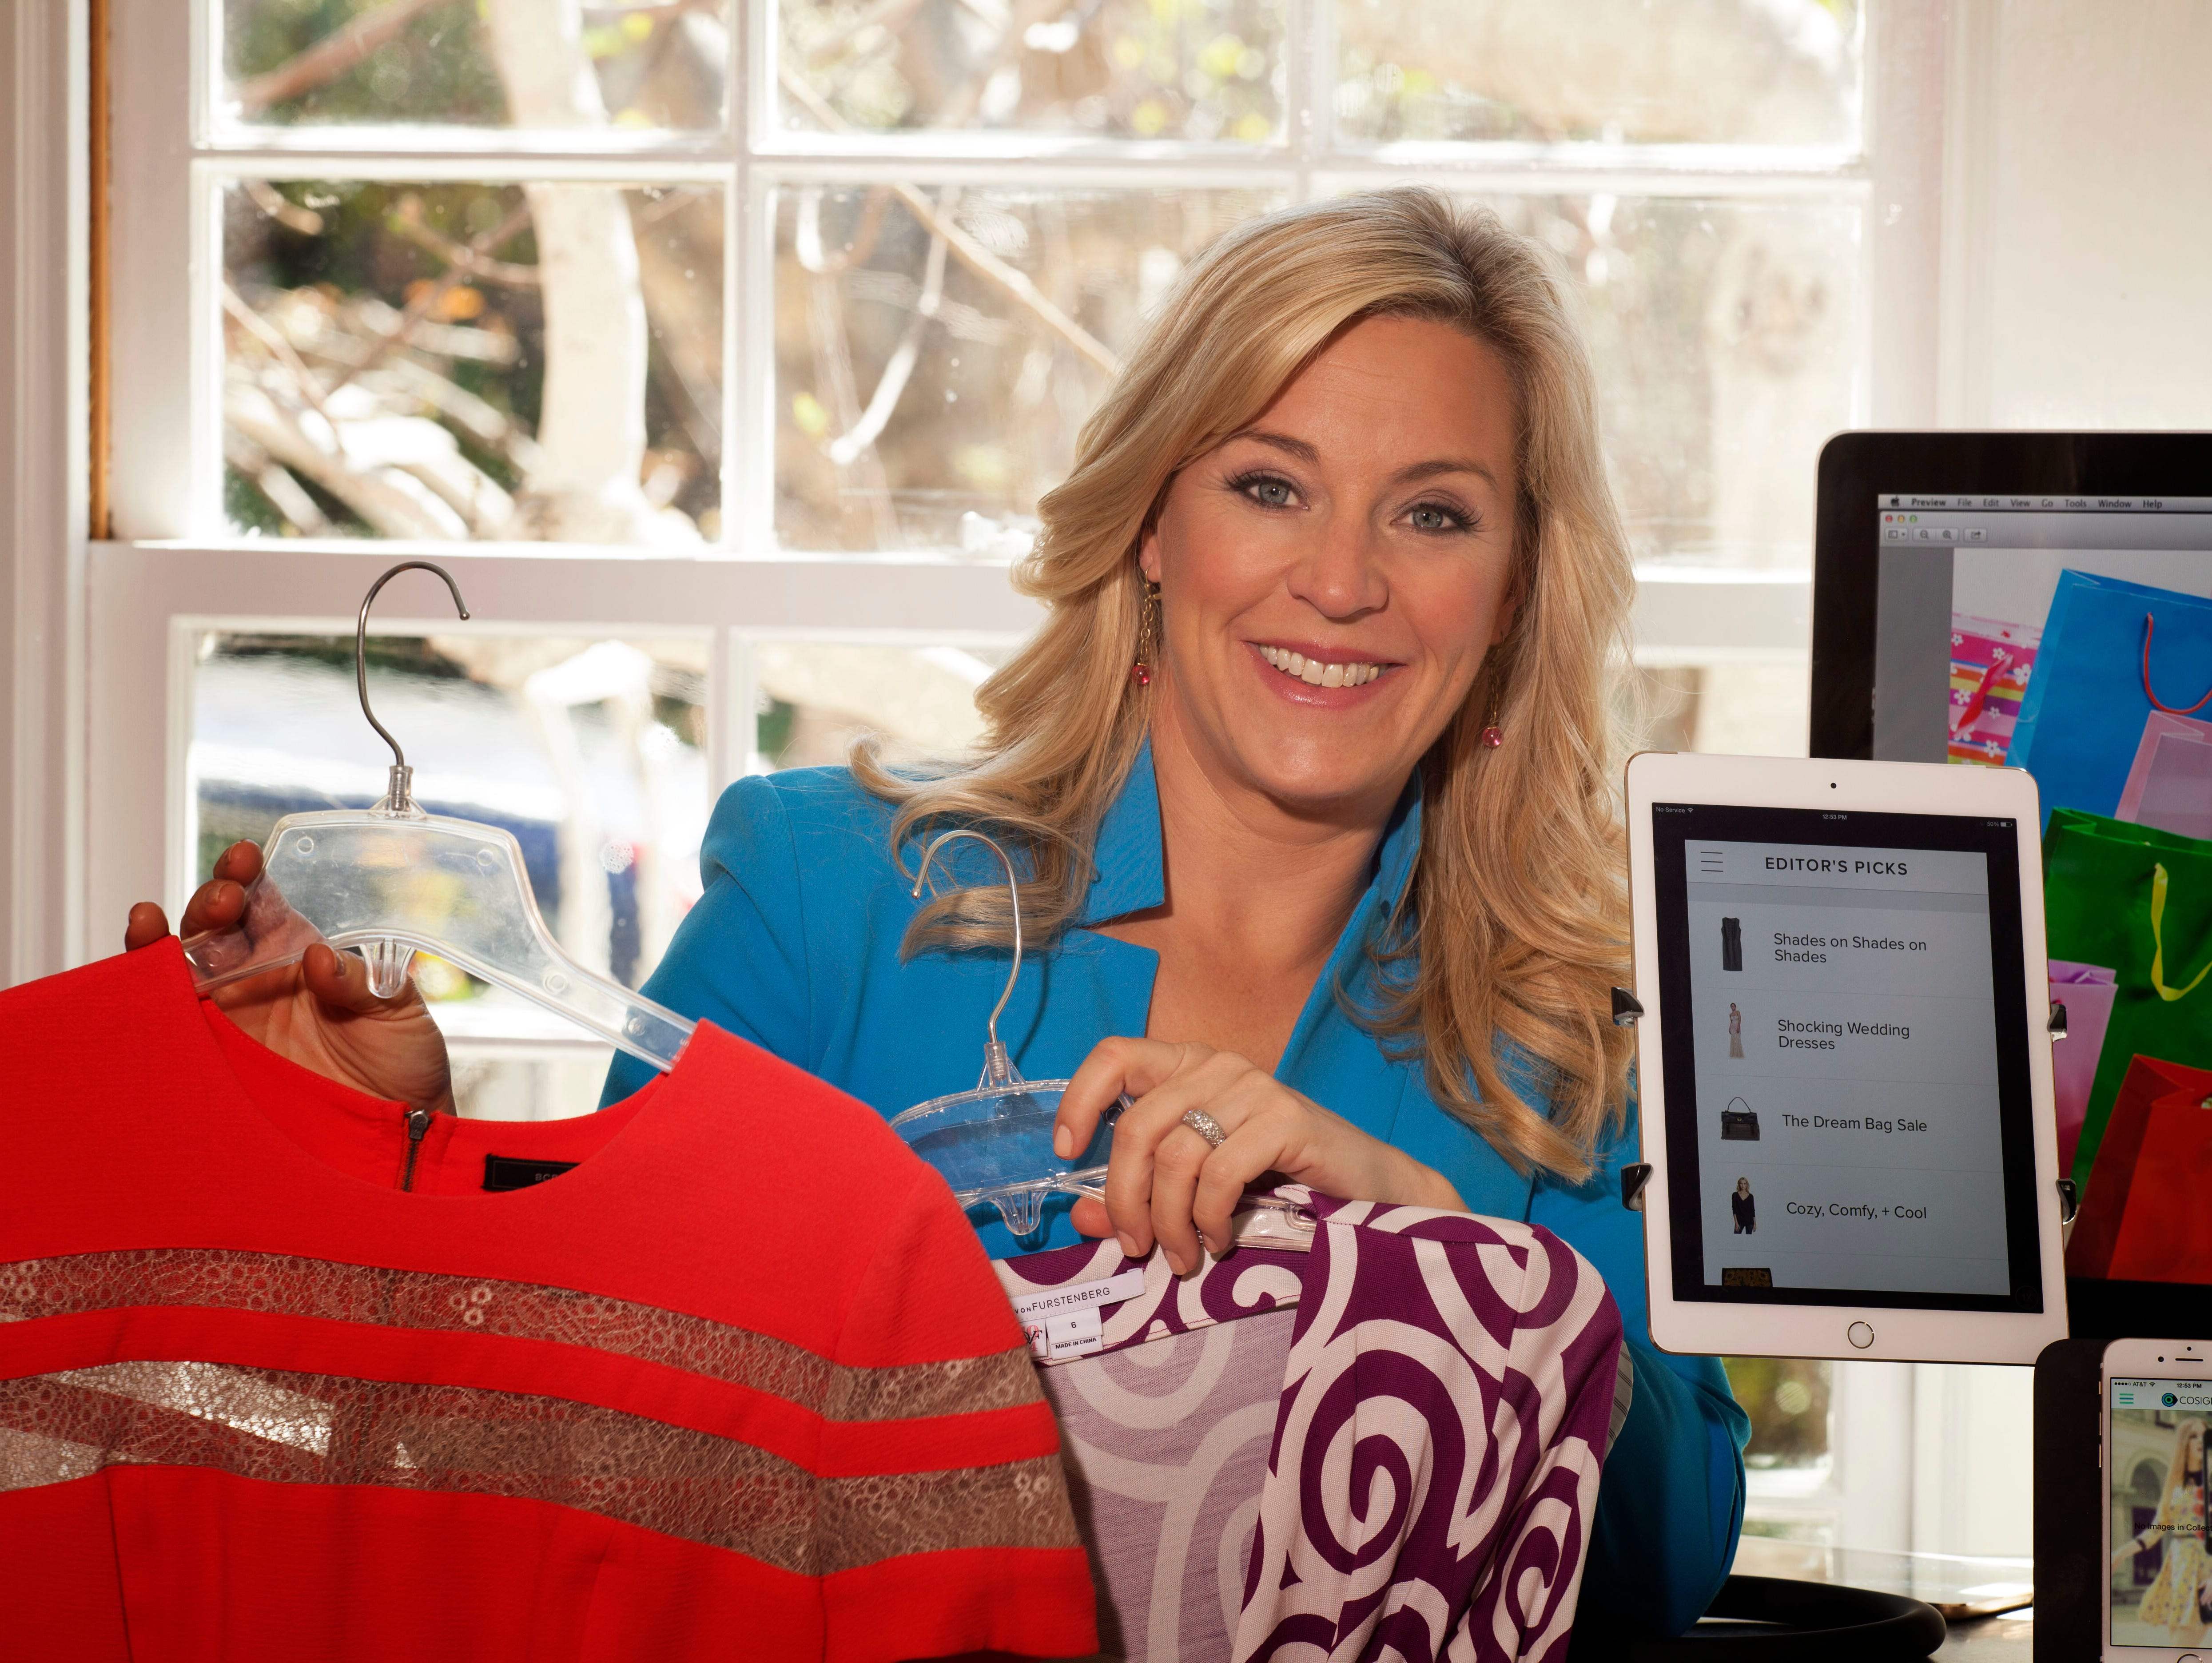 Columnist Jennifer Jolly shares her favorite shopping apps that help save you money.